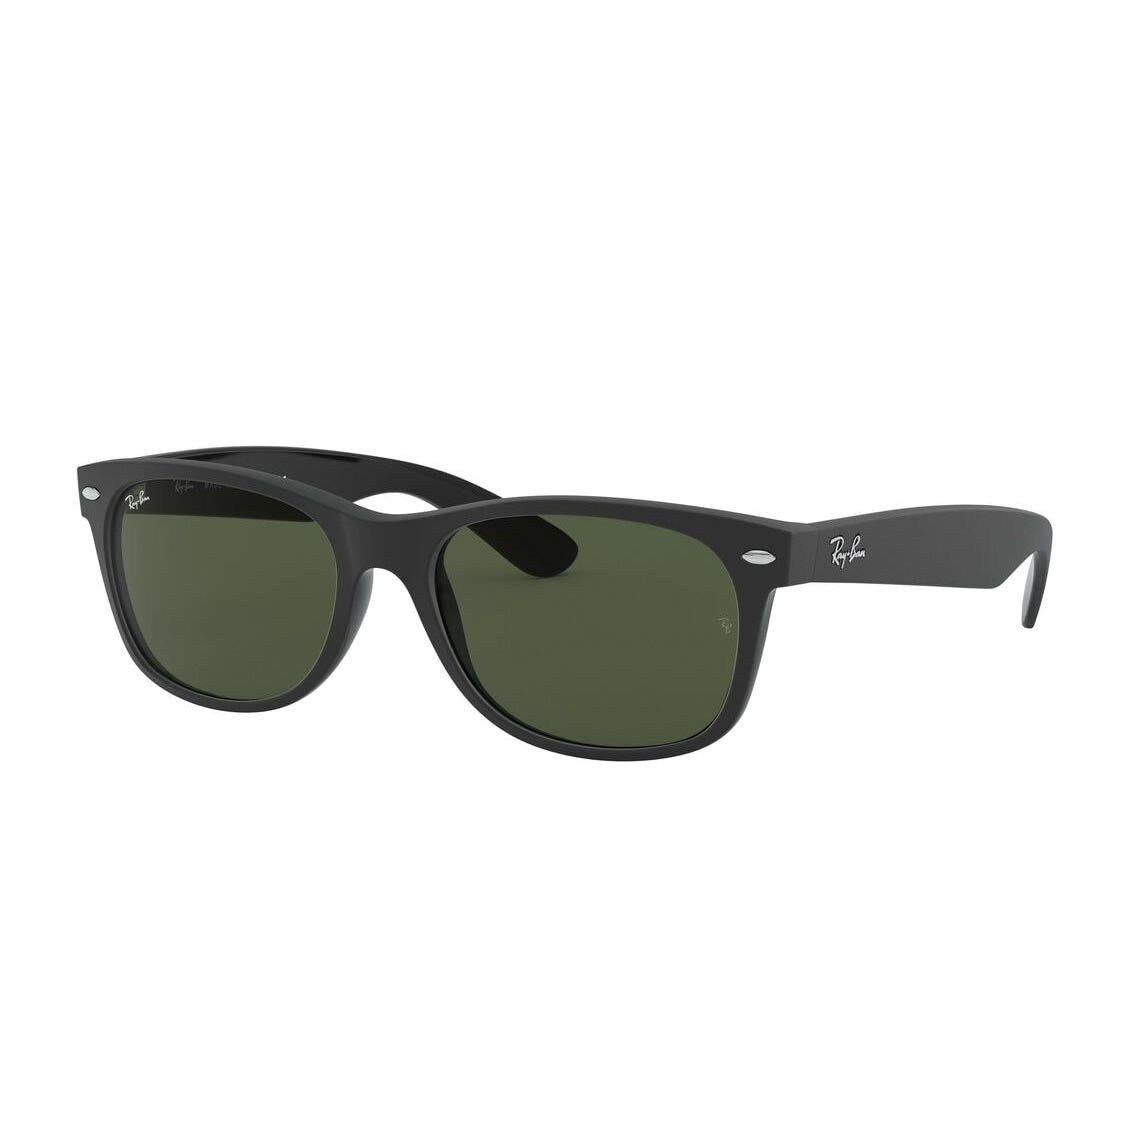 Ray-Ban New Wayfarer RB2132 646231 5218